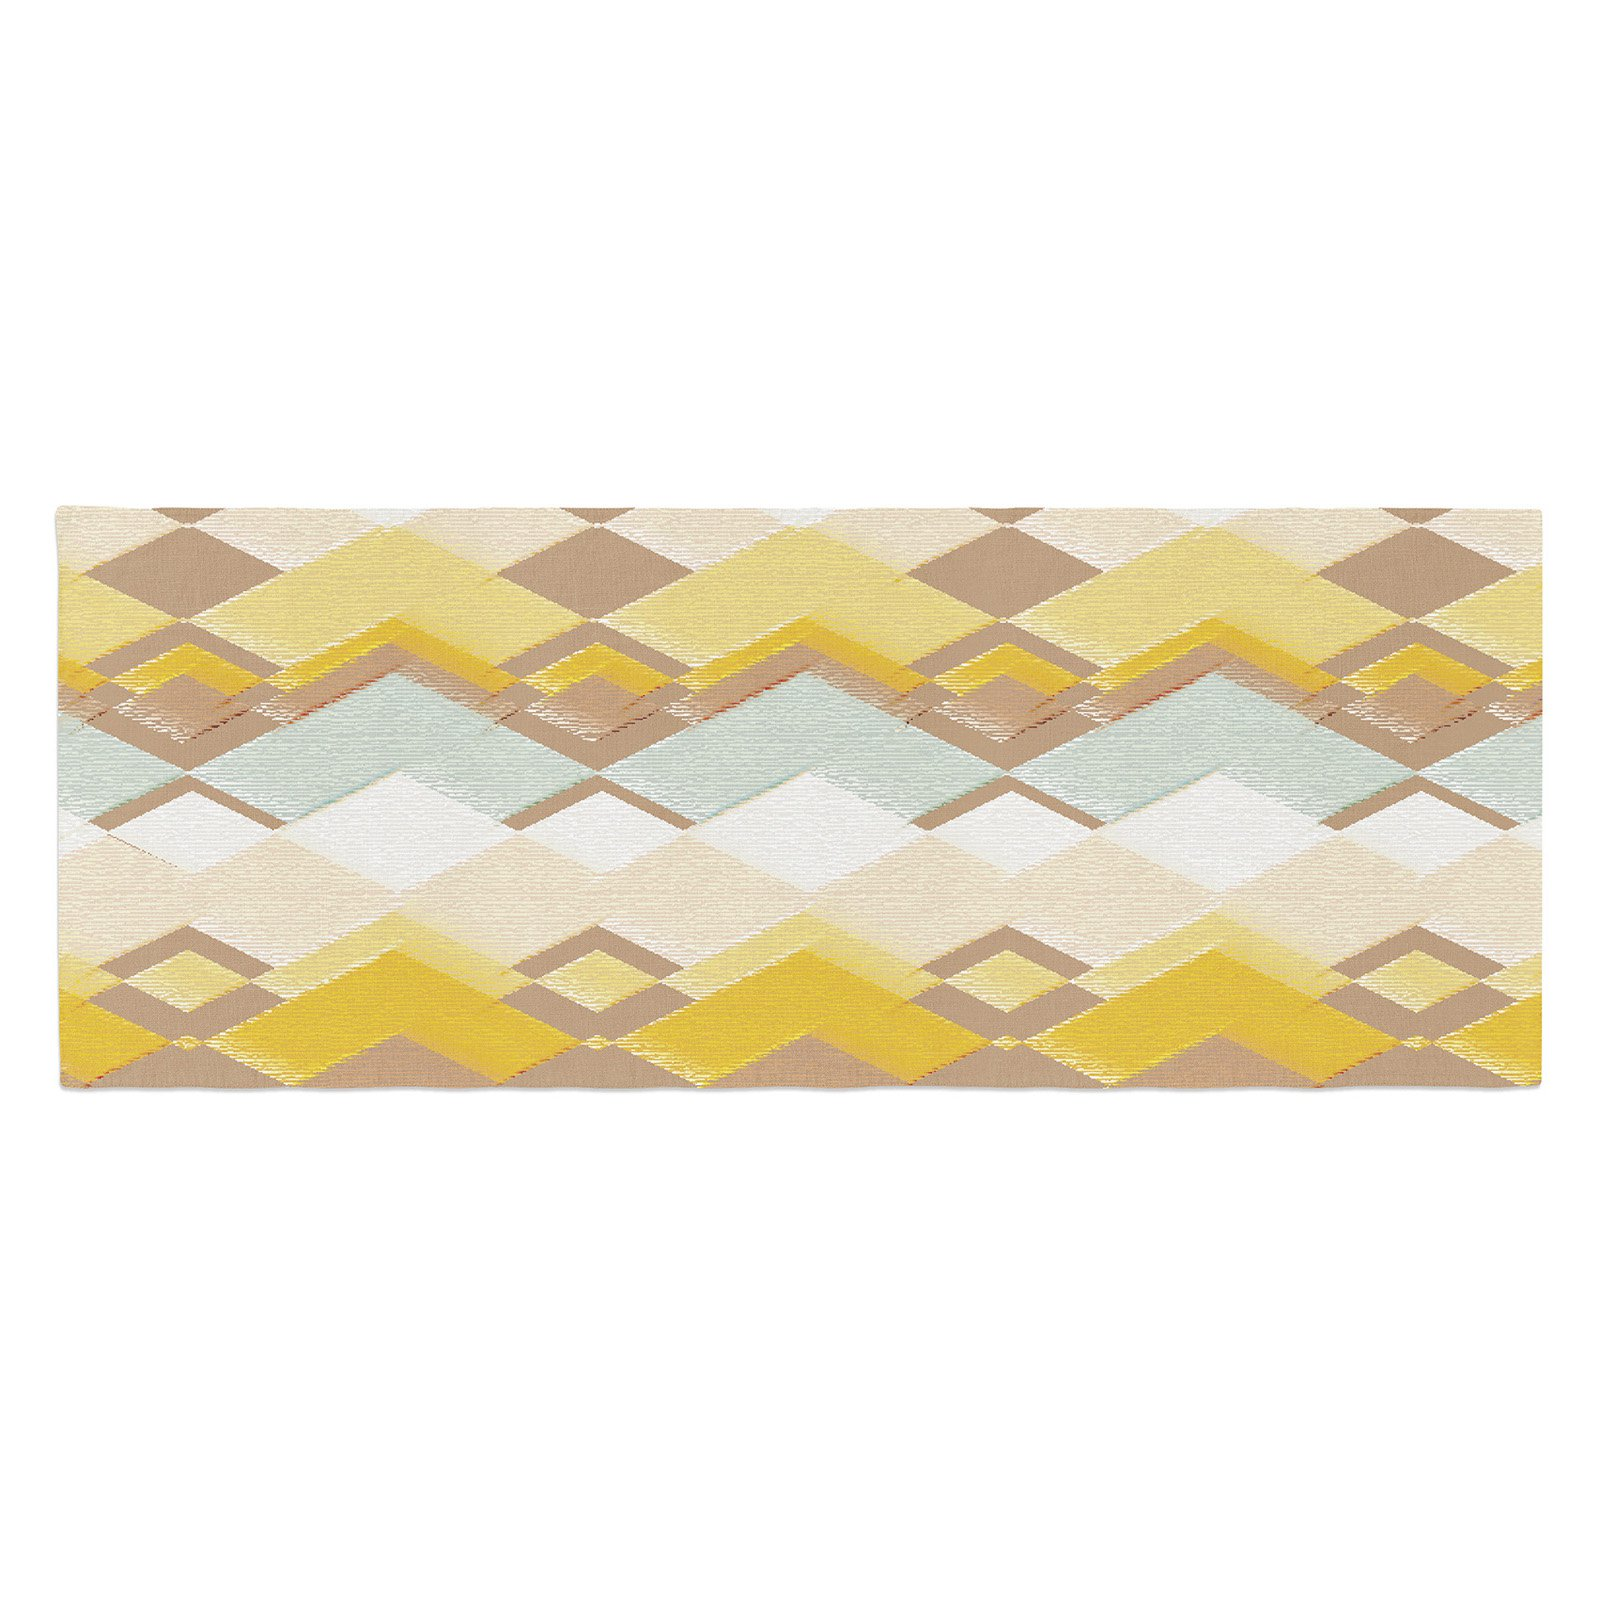 Nika Martinez Retro Desert Bed Runner by Kess InHouse